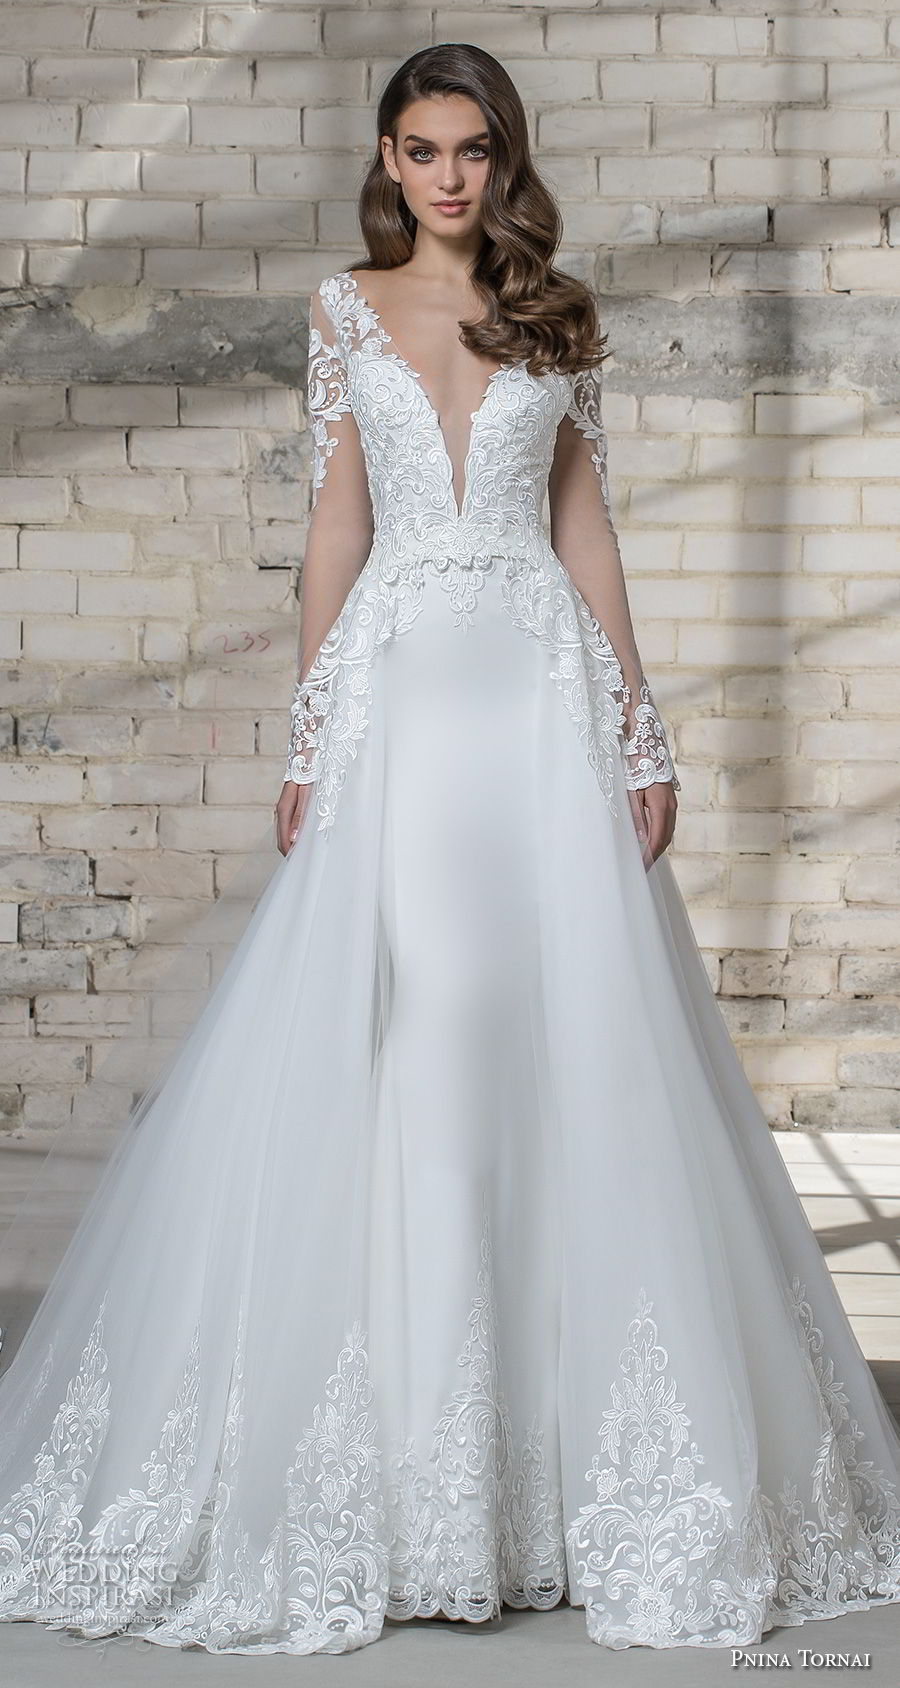 pnina tornai 2019 love bridal long sleeves deep plunging v neck heavily embellished bodice elegant princess sheath wedding dress a line overskirt sheer button back chapel train (10) bv mv